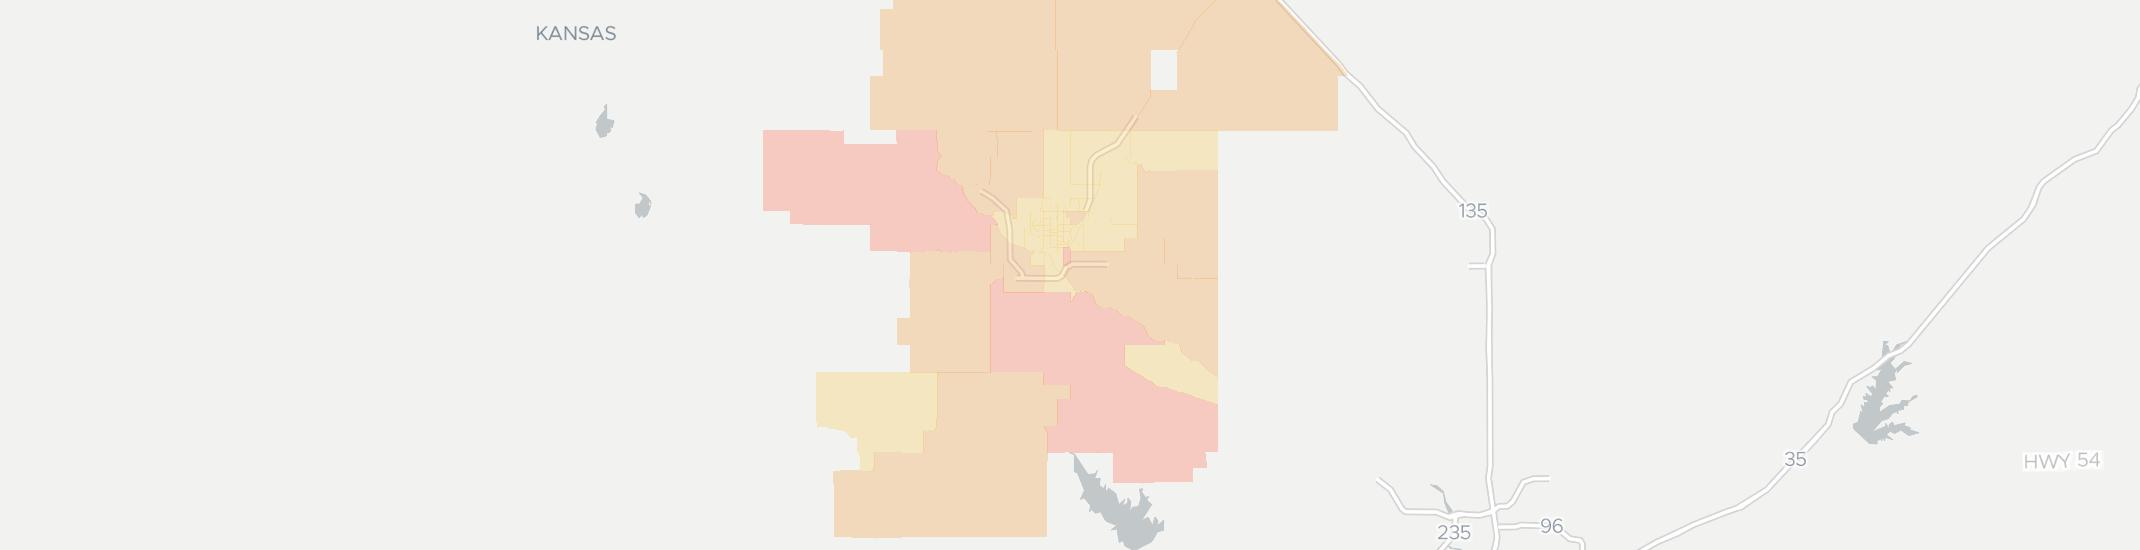 Hutchinson Ks Zip Code Map.Internet Providers In Hutchinson Ks Compare 16 Providers